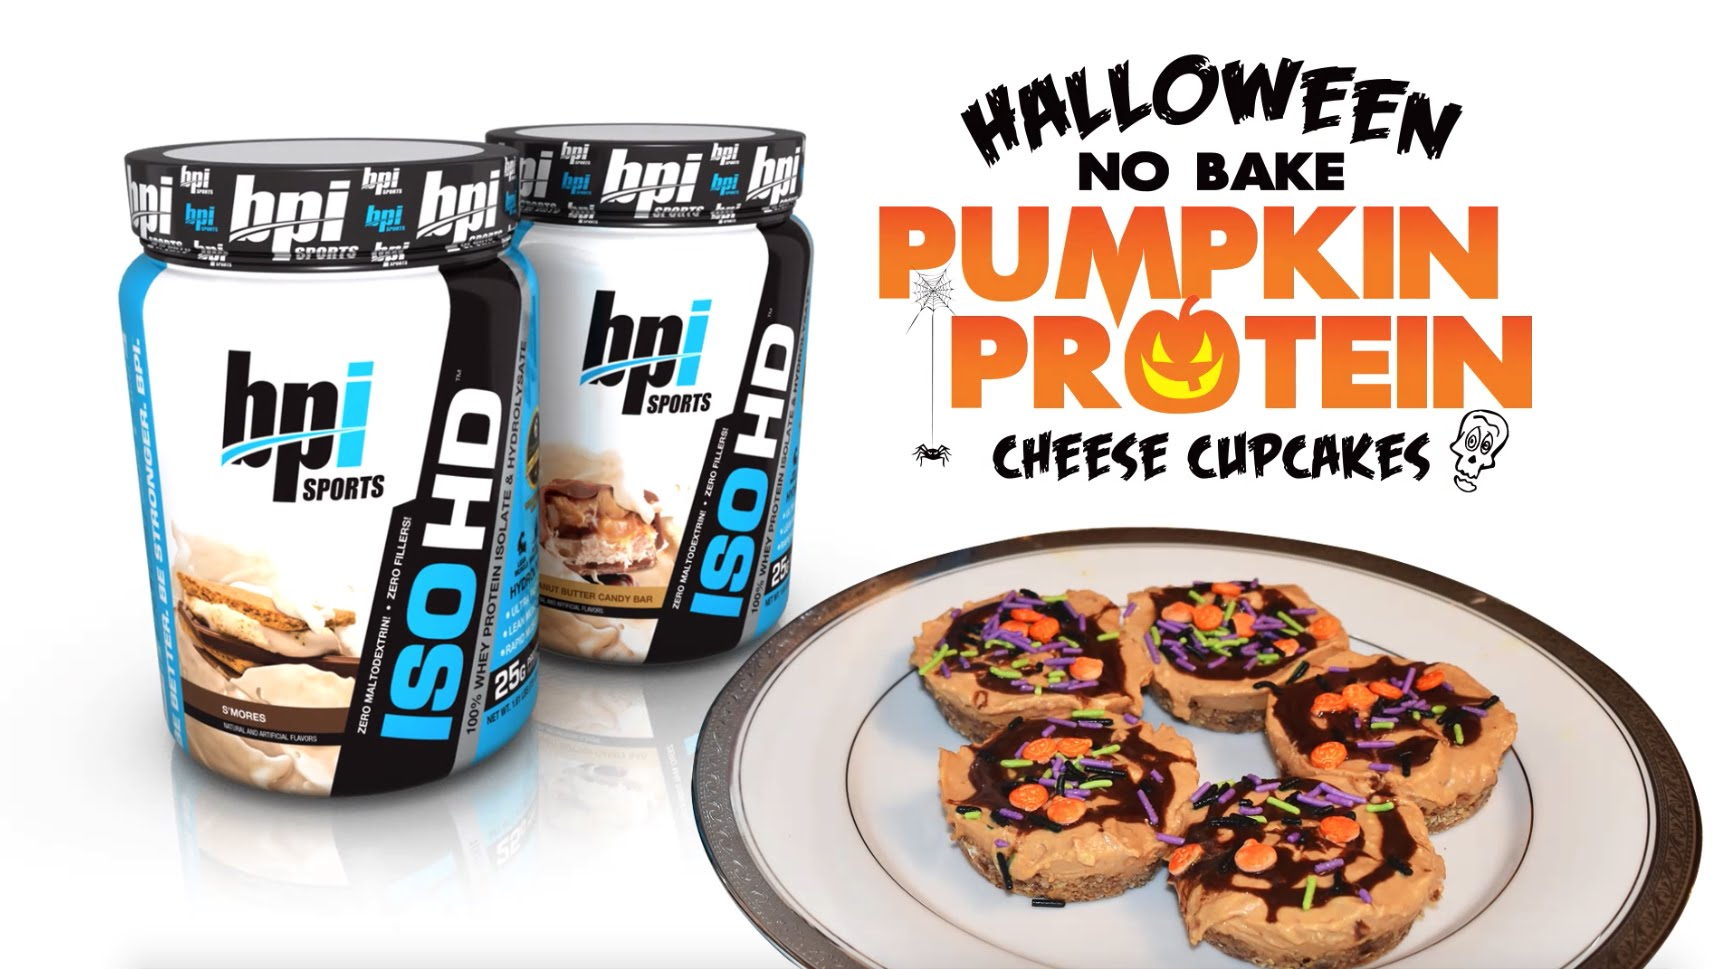 Halloween-No-Bake-Protein-Cheesecake-Chef-Geo-BPI-Sports